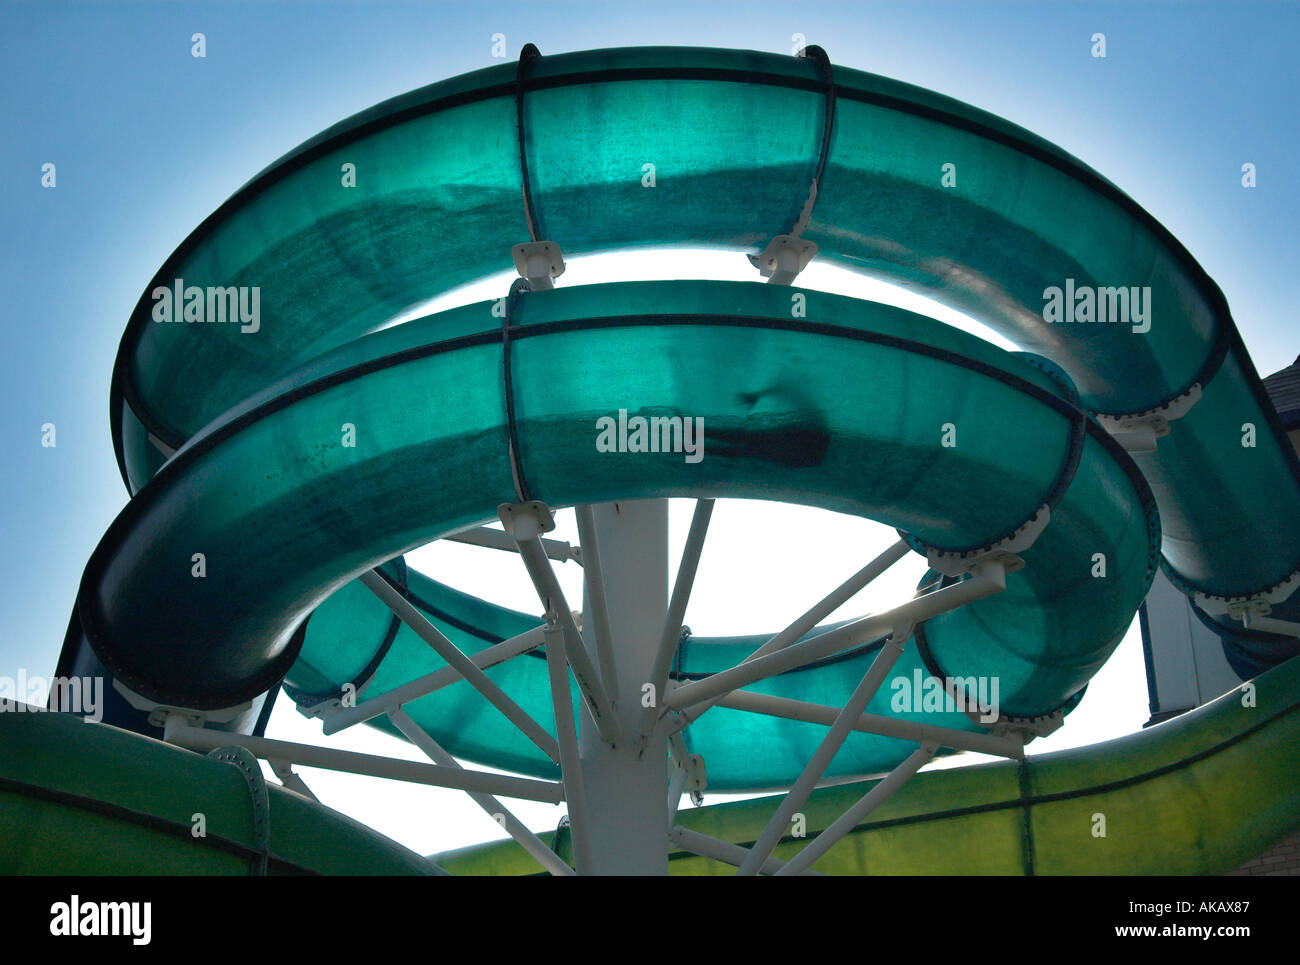 Water Slide At Colchester Leisure World Essex Stock Photo Royalty Free Image 4878982 Alamy